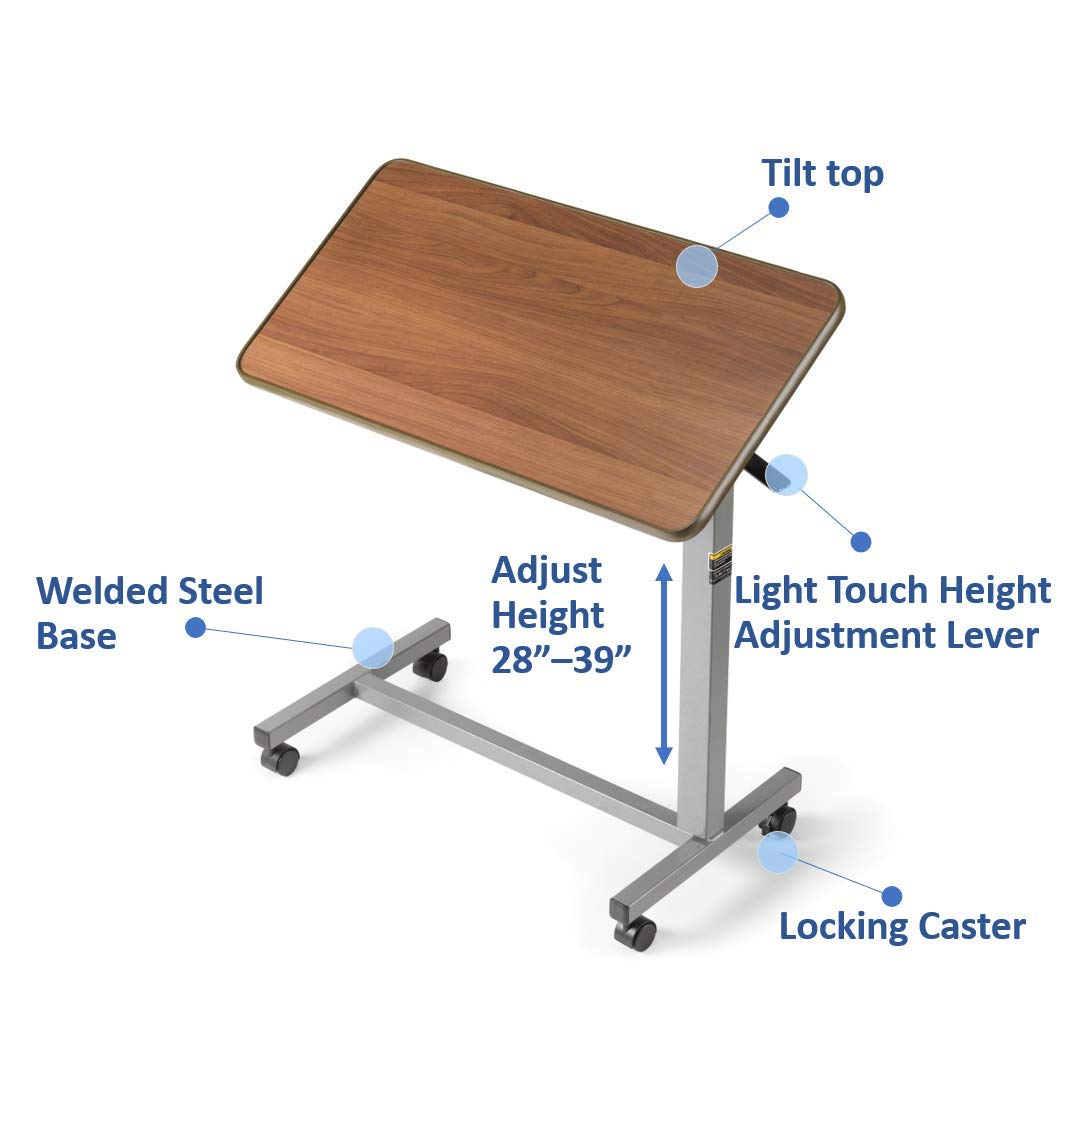 B000C4QFTY Invacare Overbed Table, with Tilt Top, Height Adjustable, 6418 719ItEcub2L._SL1500_